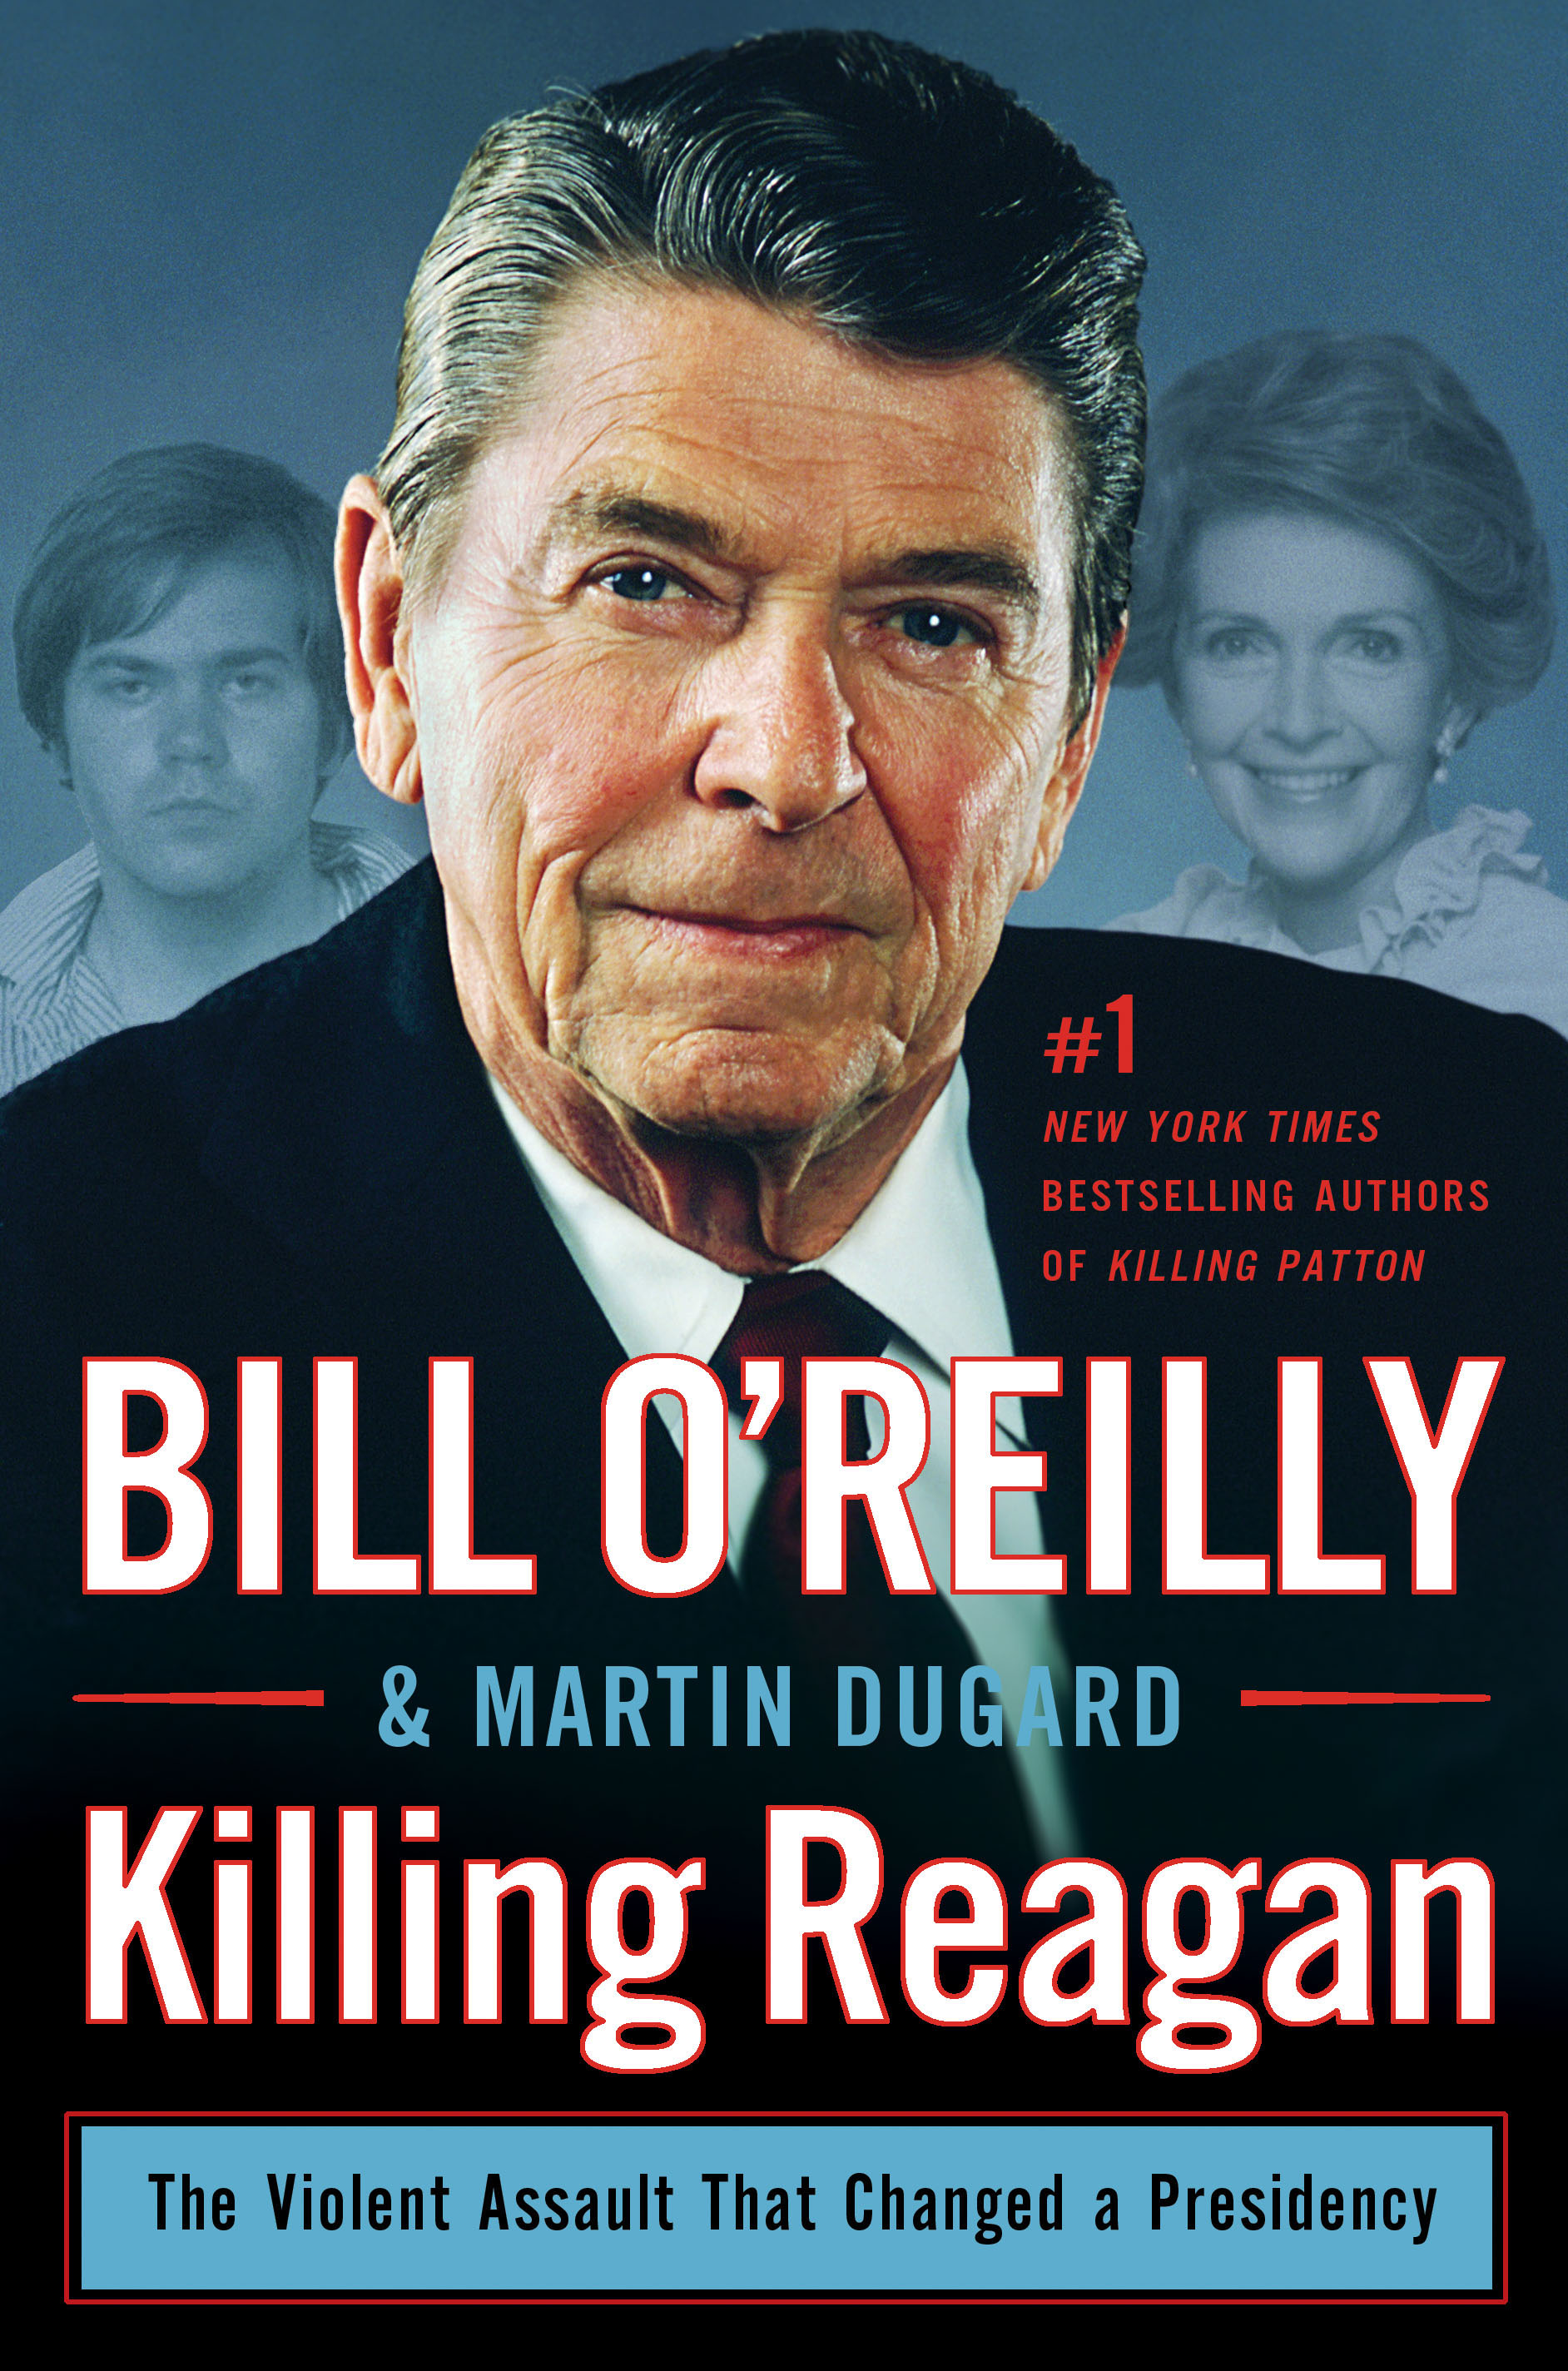 Killing Reagan The Violent Assault That Changed a Presidency cover image